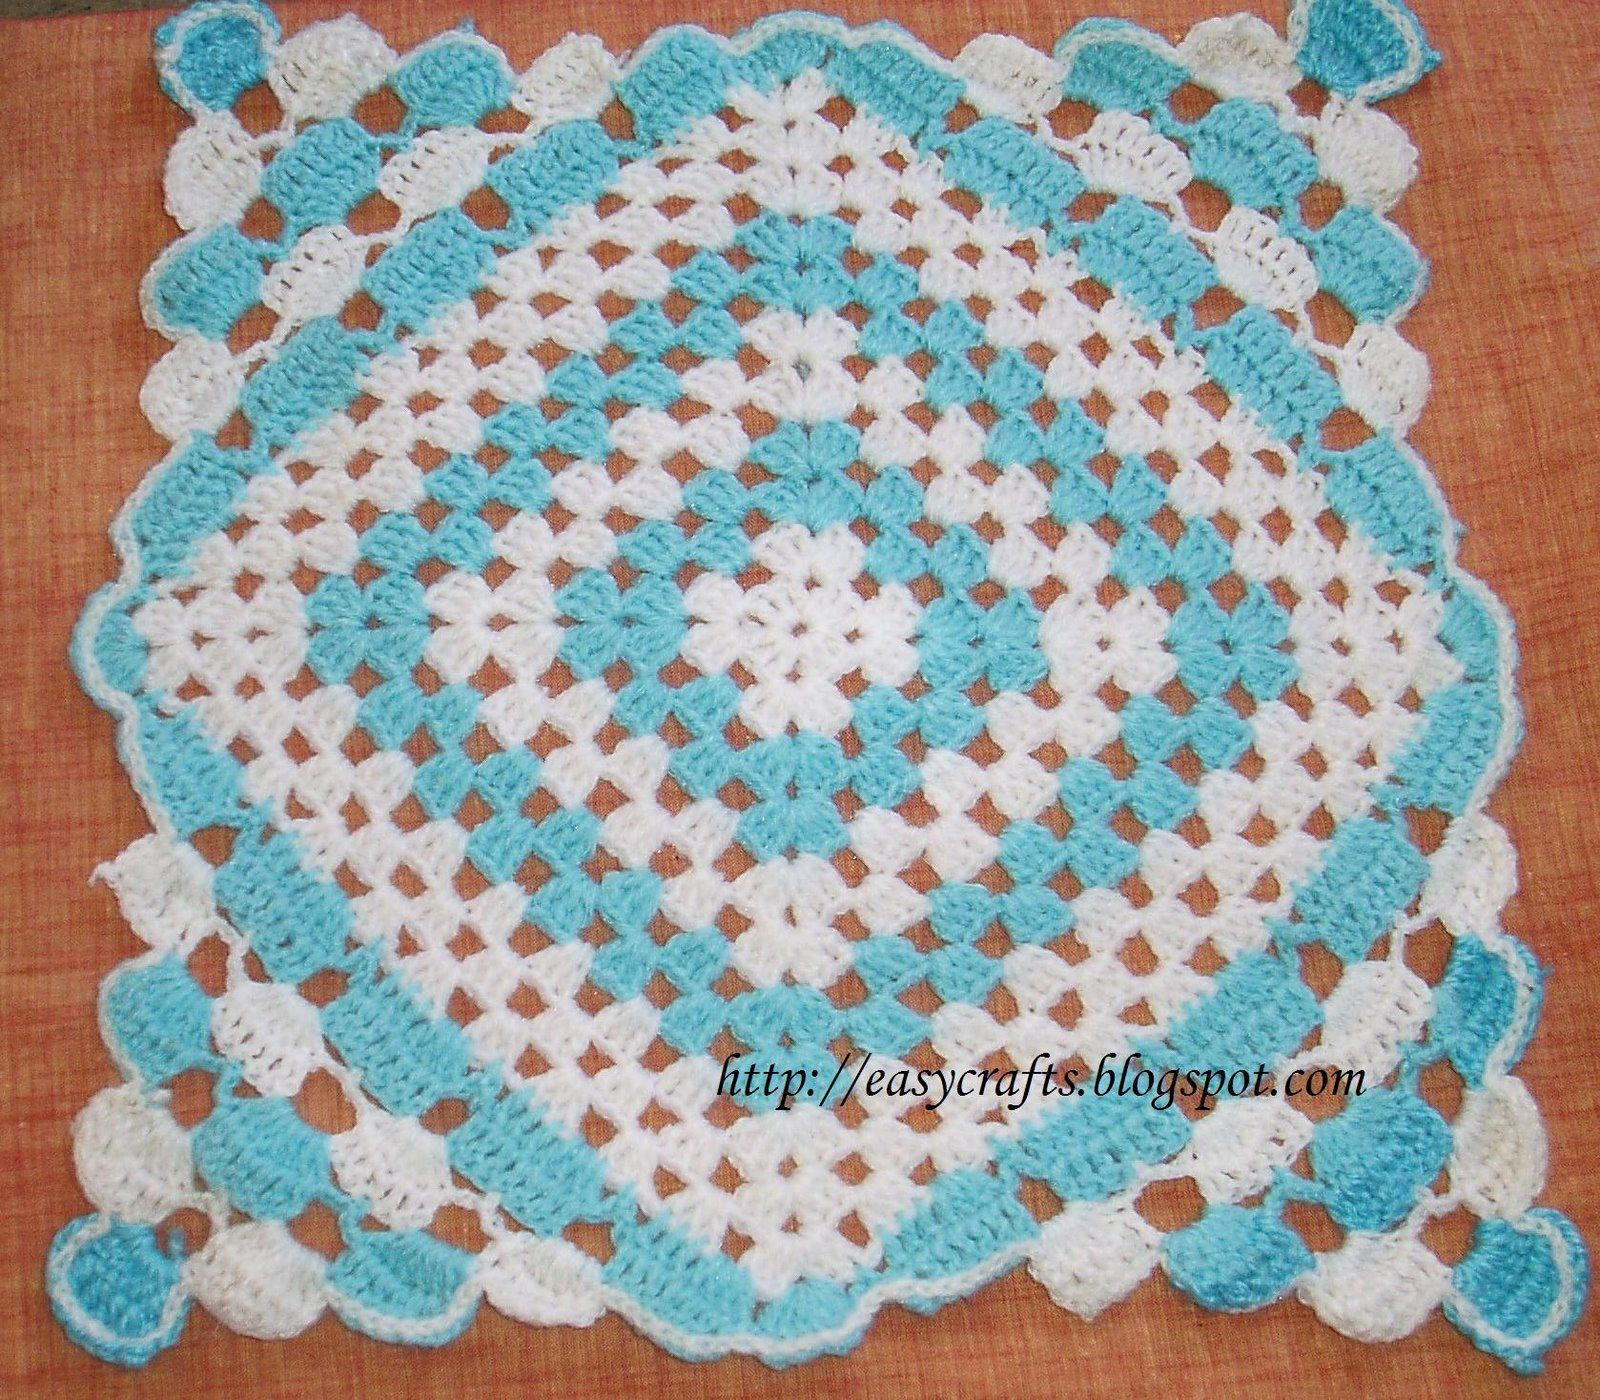 Crocheofthedesign so no pattern for this too crochet crochet pattern free bankloansurffo Image collections